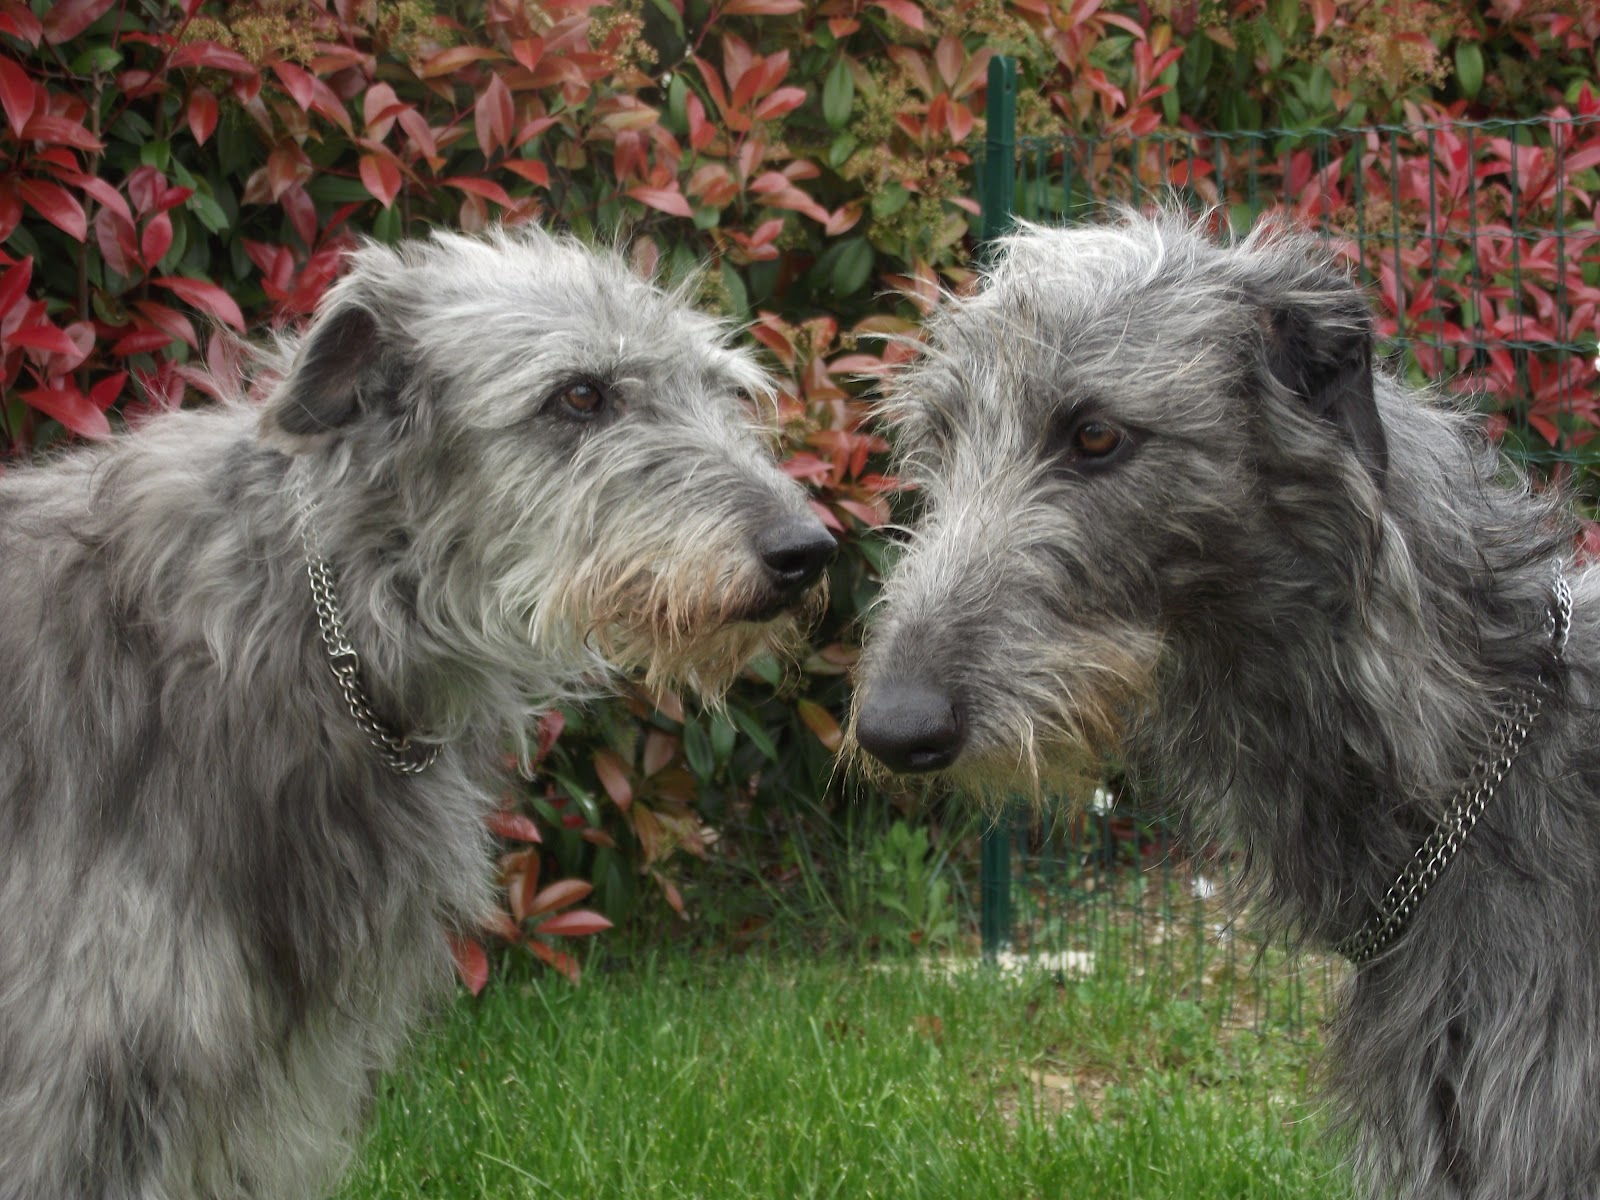 Two Scottish Deerhound dogs wallpaper